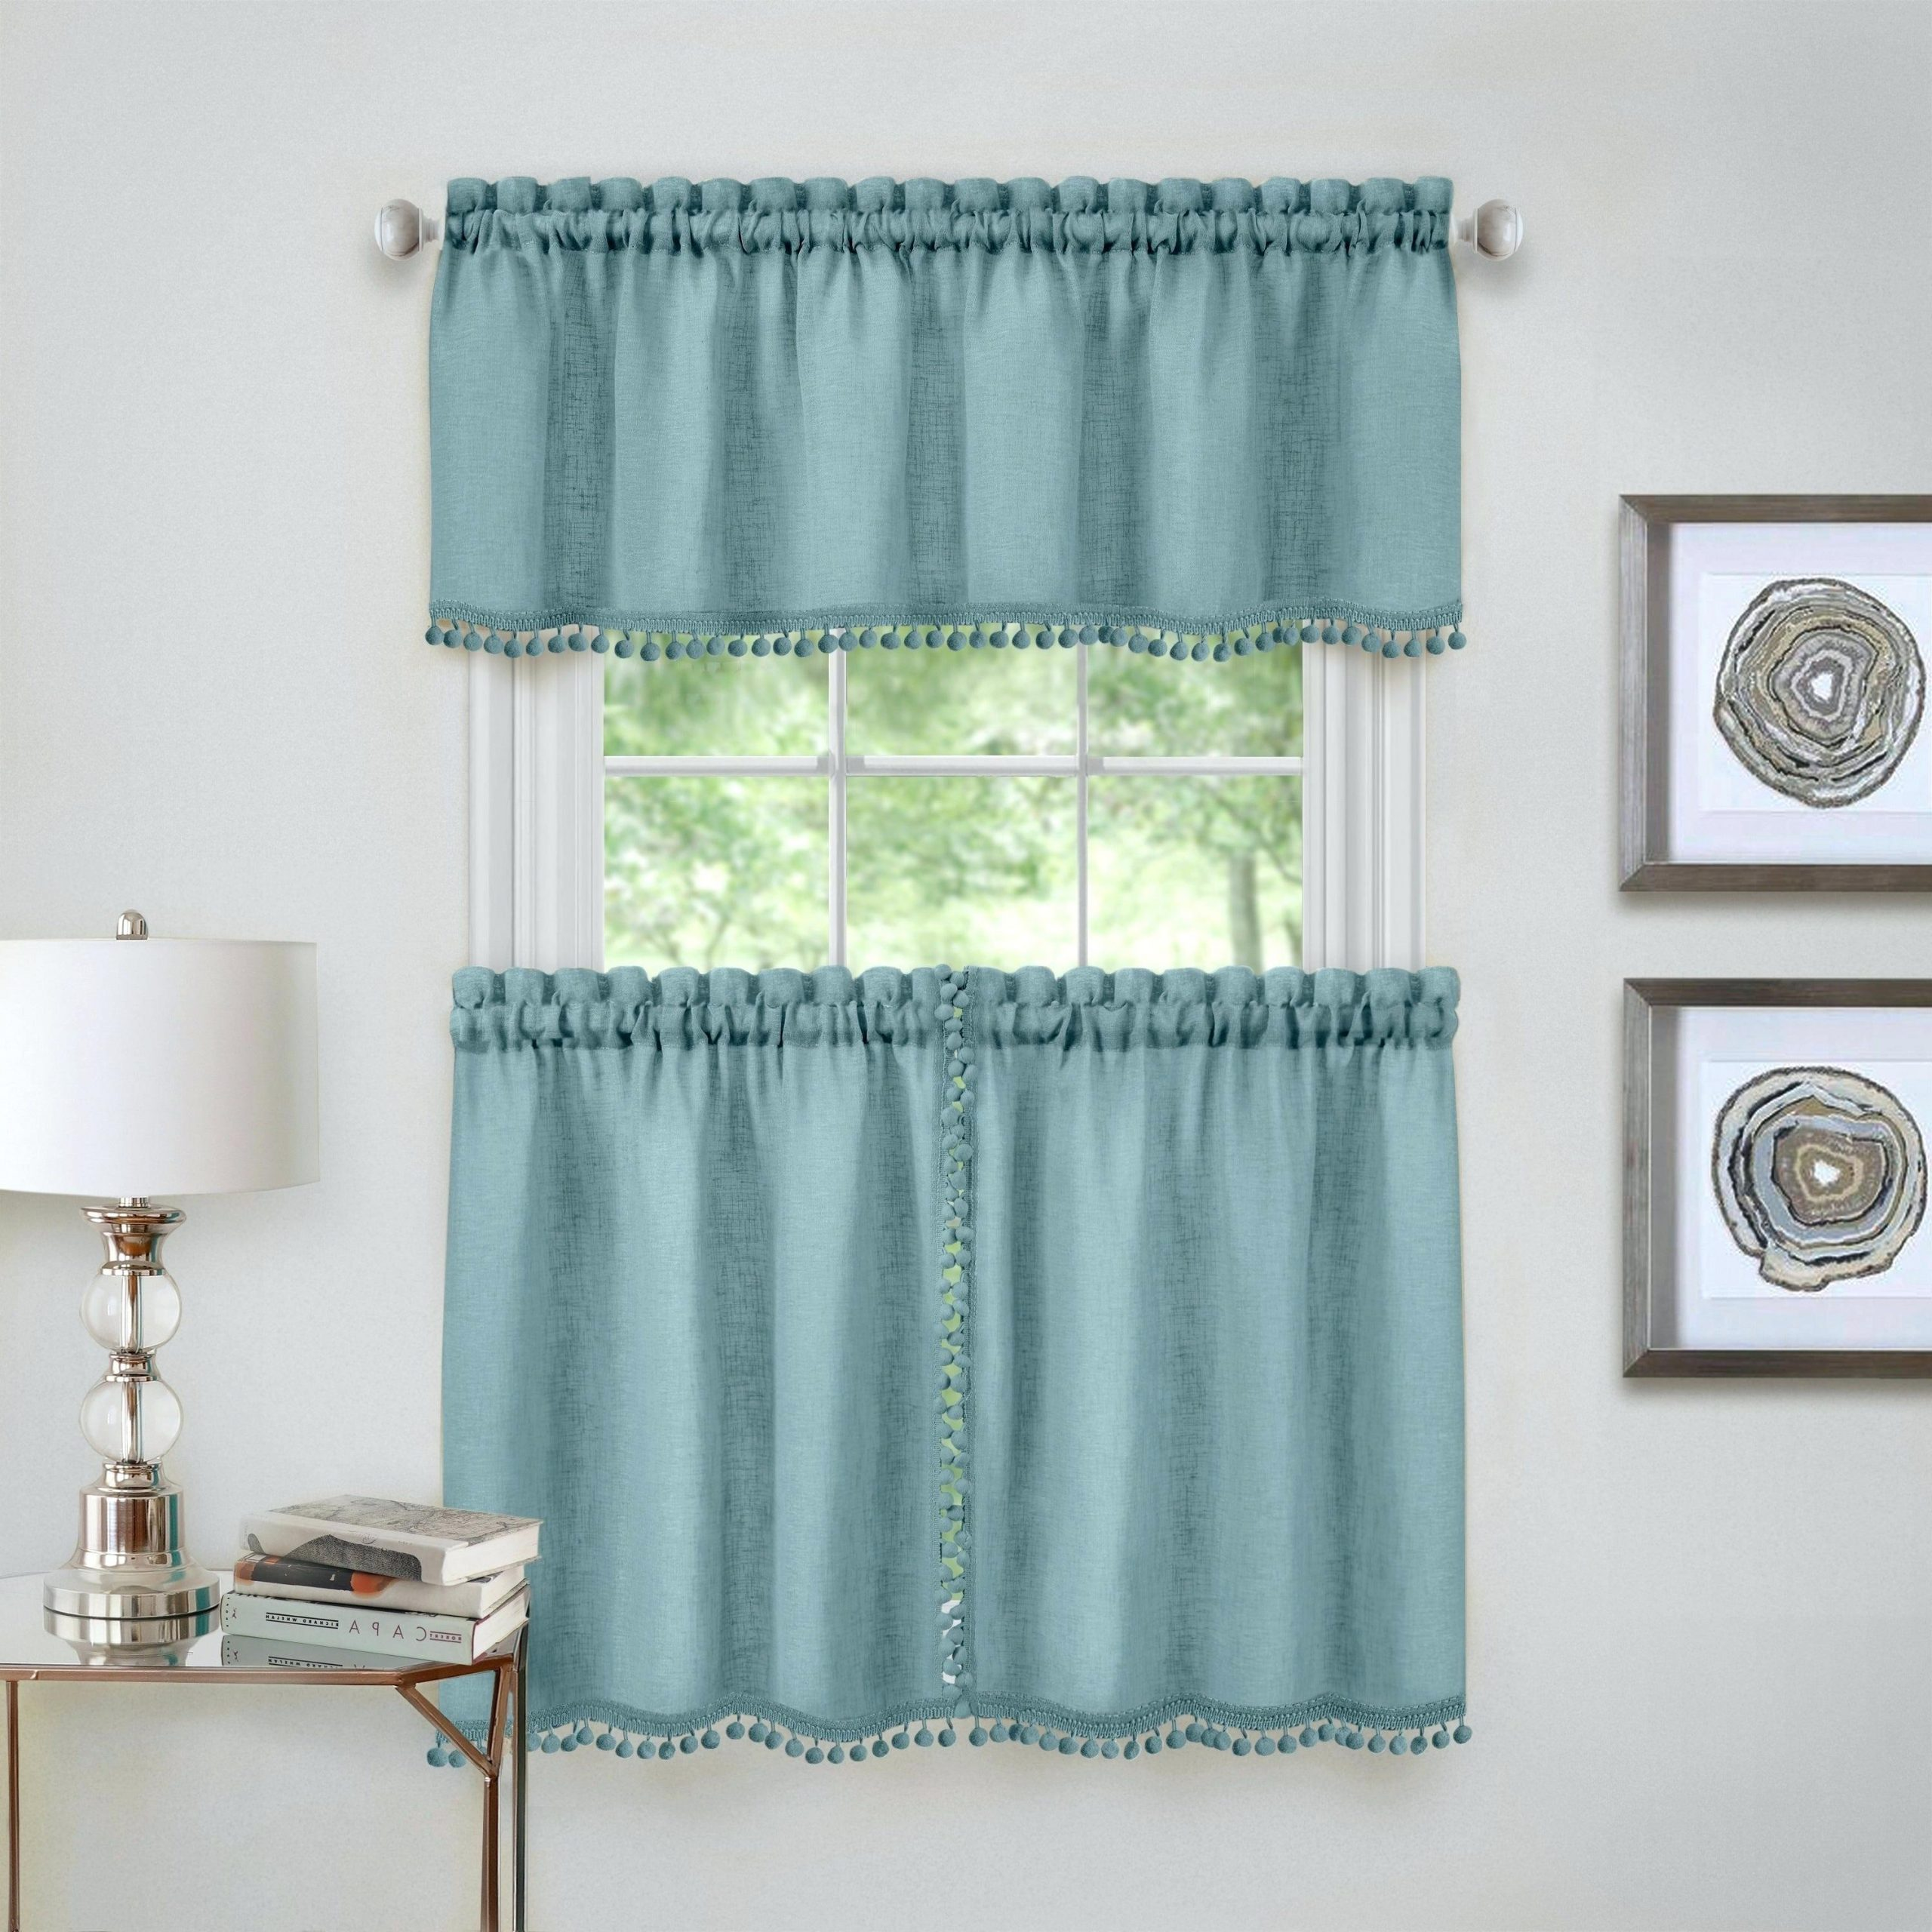 Microfiber 3 Piece Kitchen Curtain Valance And Tiers Sets For Widely Used Curtain Sets With Valance – Onsaturn (View 15 of 20)